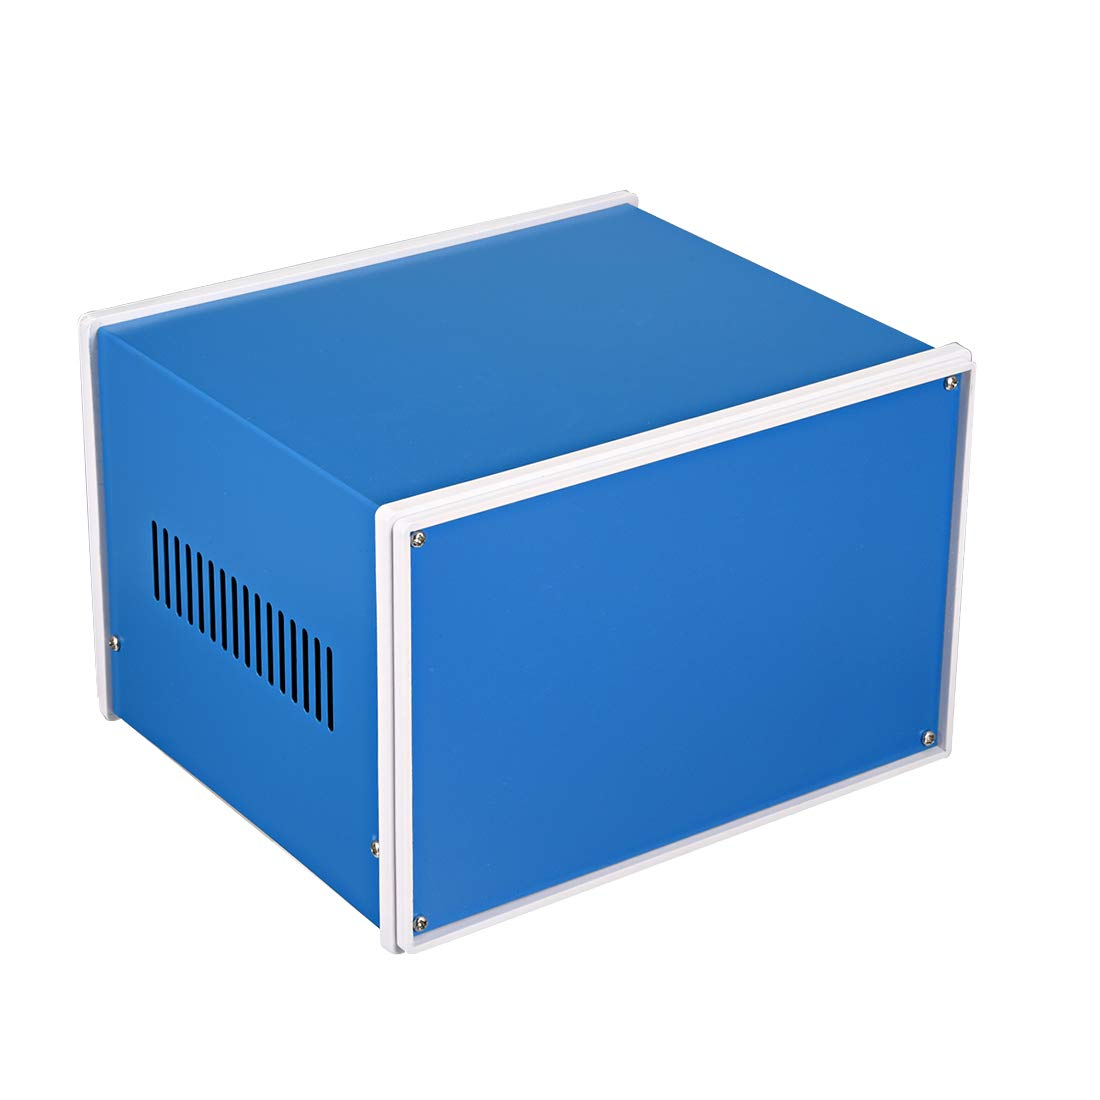 uxcell Metal Blue Project Junction Box Enclosure Case 210 x 180 x 140mm/8.27 x 7.09 x 5.51inch